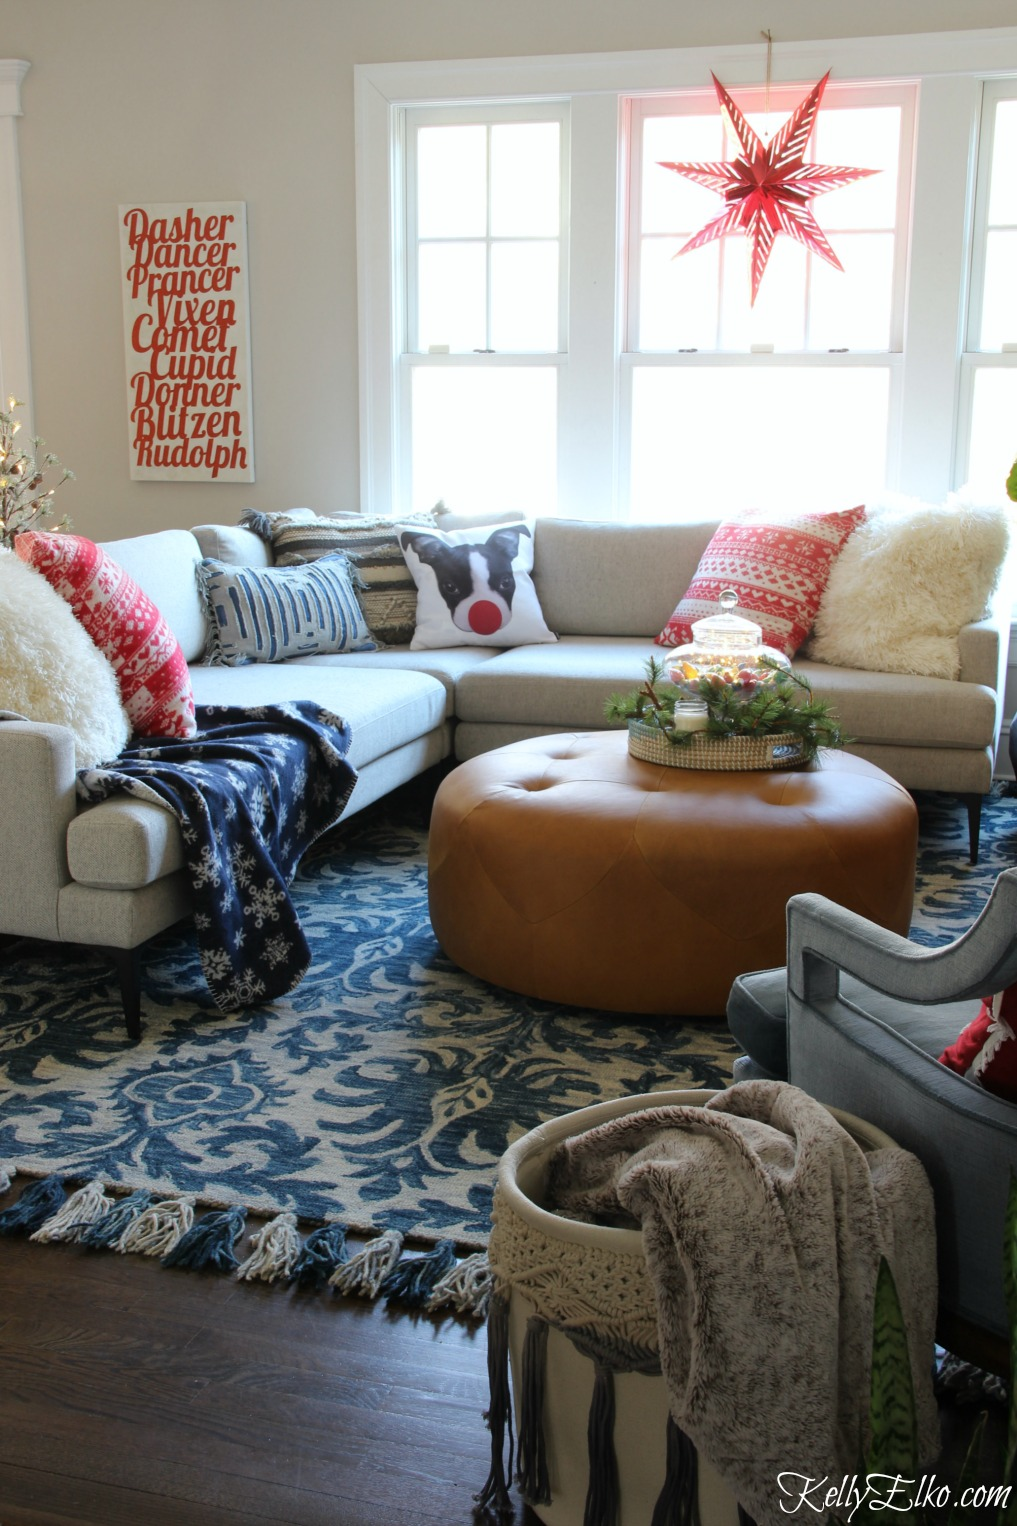 Christmas Home Tour - love this sectional sofa with fun pillows and the paper star in the window kellyelko.com